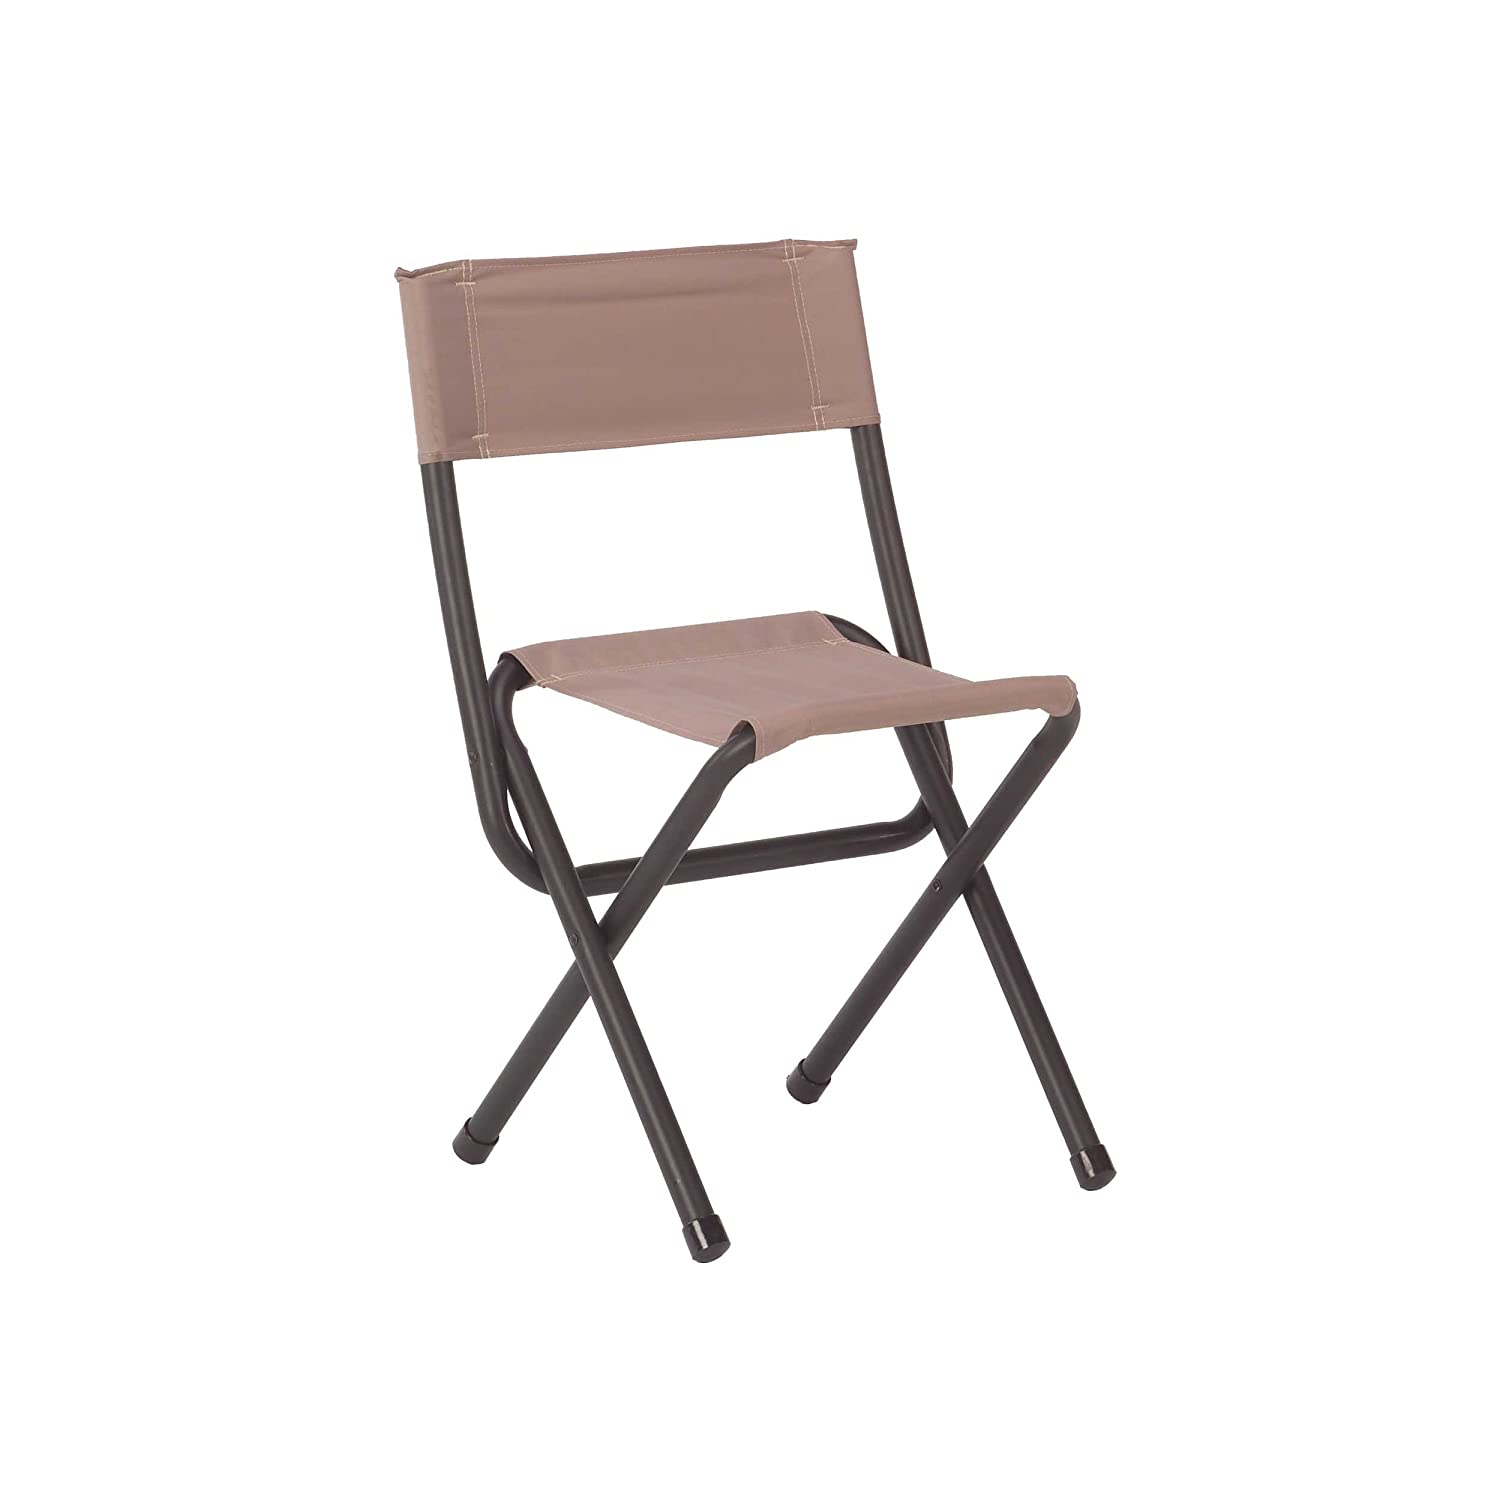 gci camping outdoor bi by folding camp chairs fold position front chair